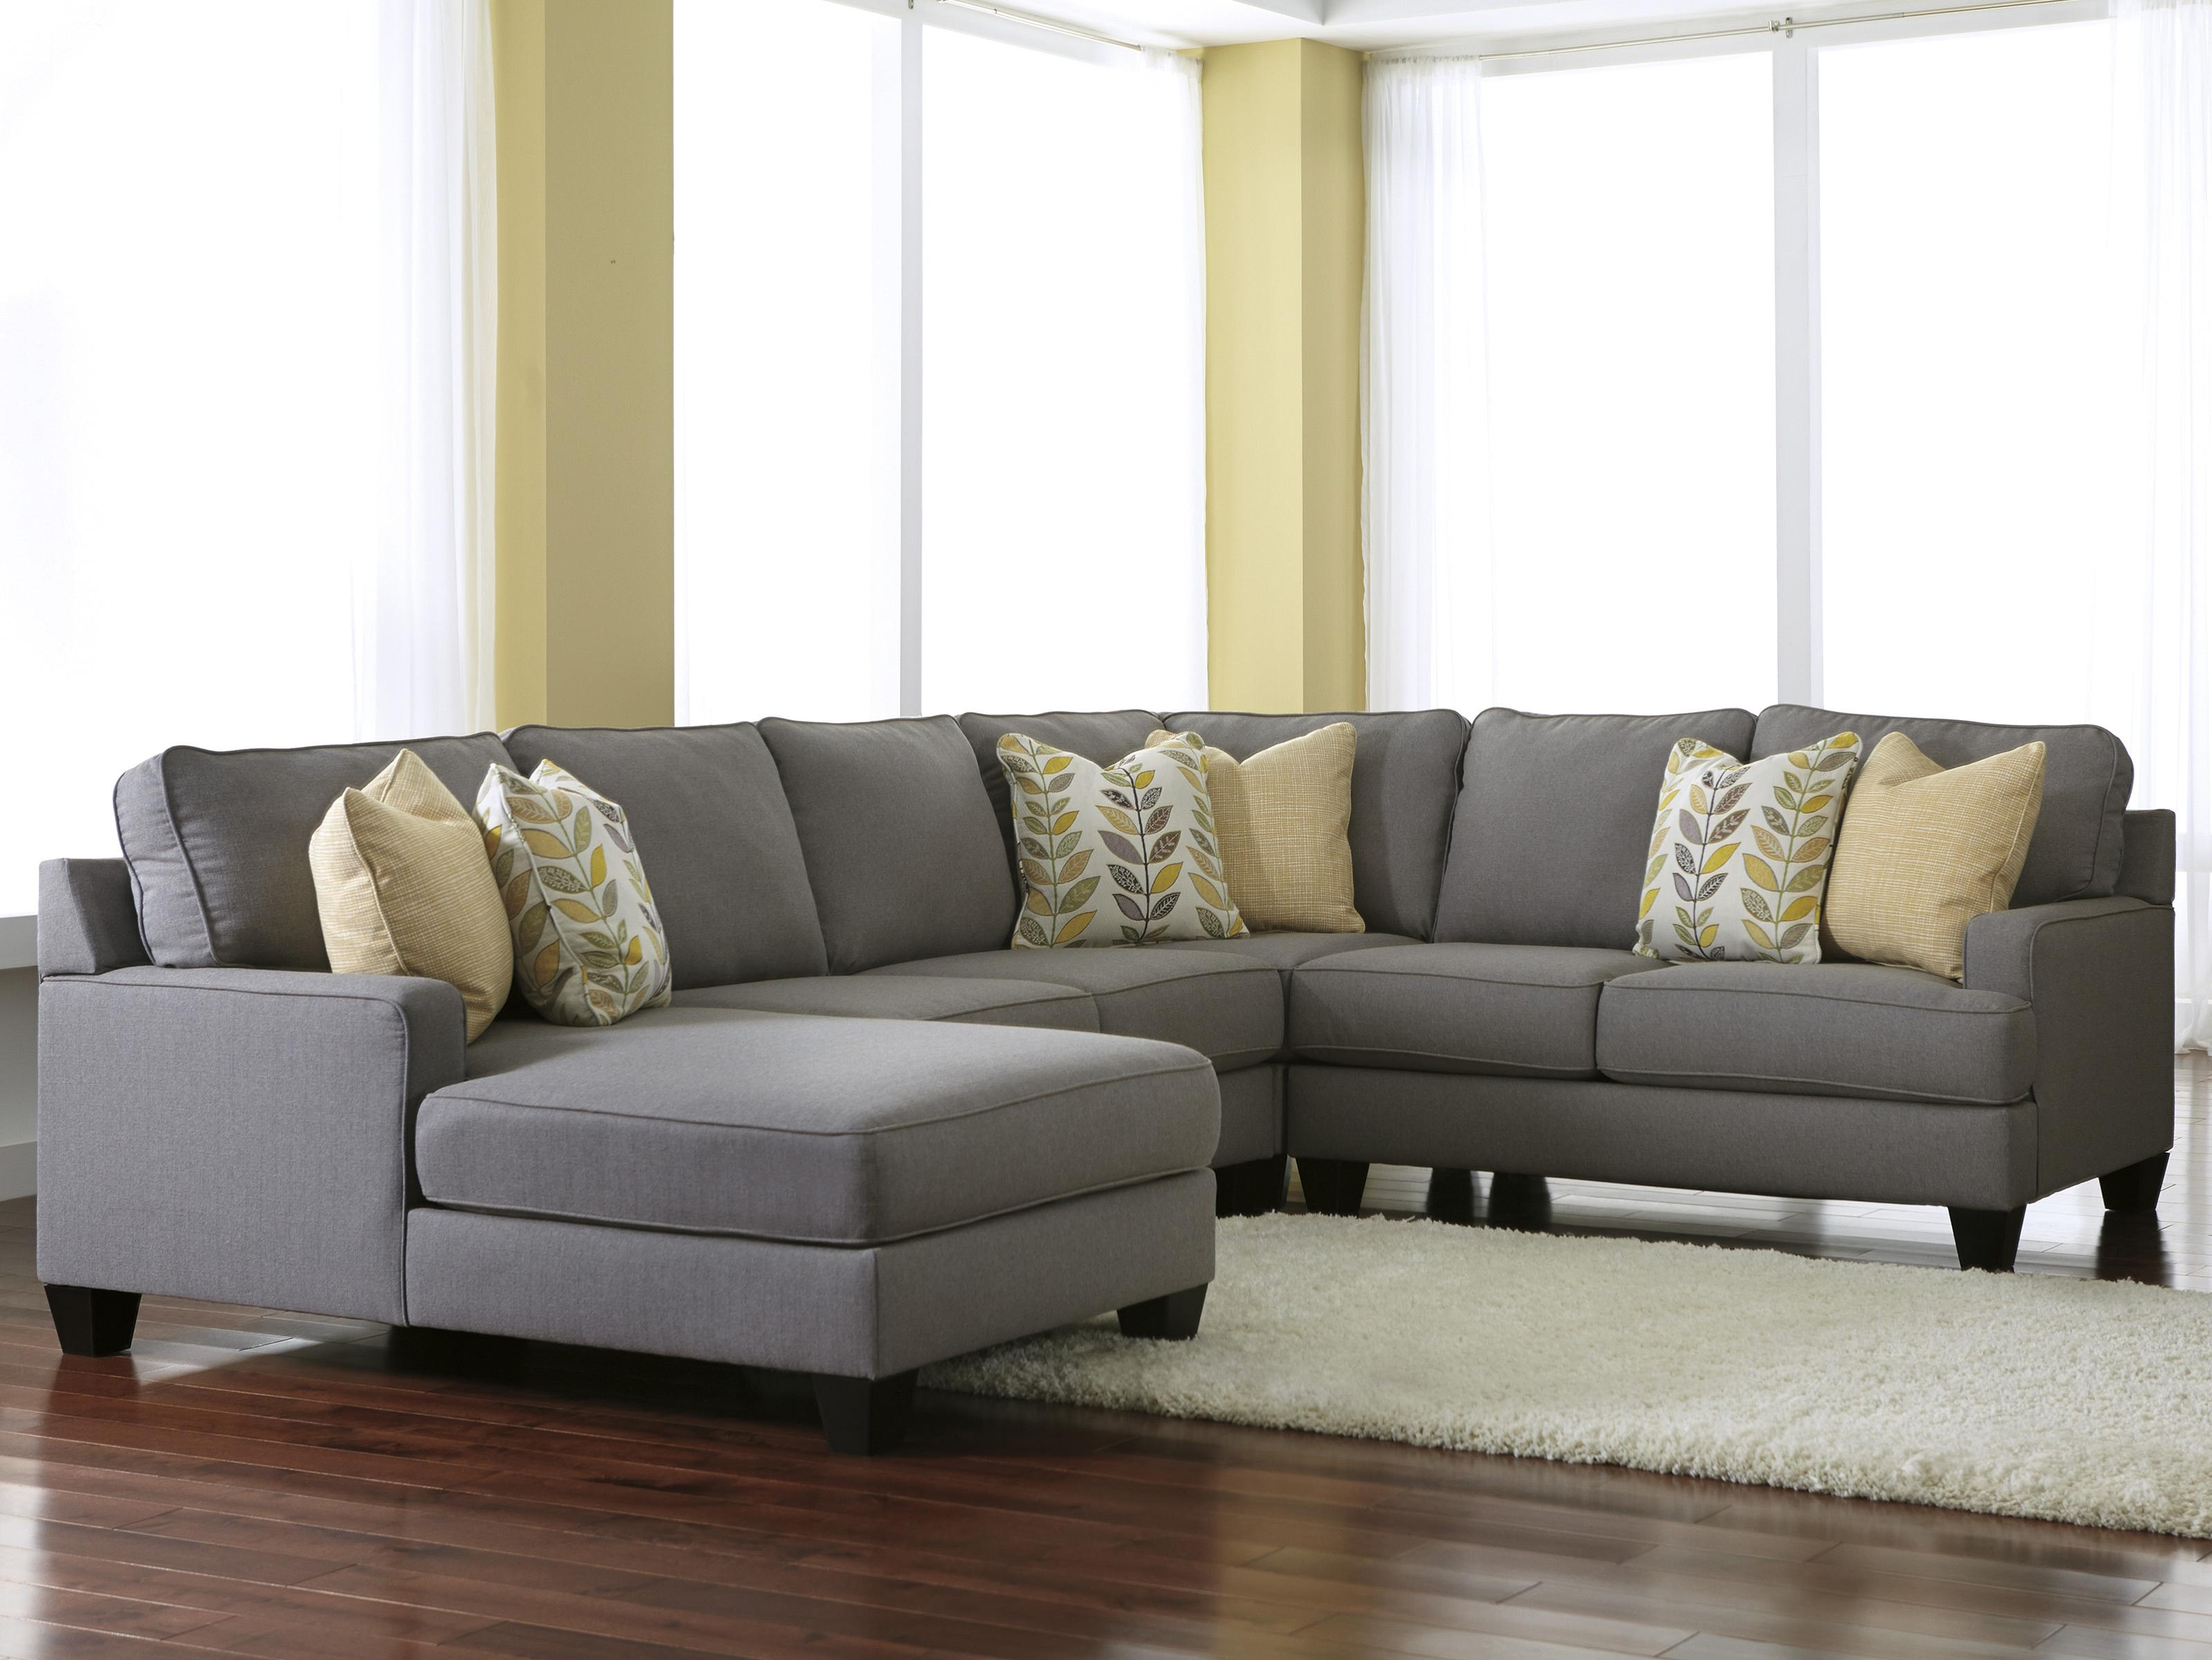 Modern 4-Piece Sectional Sofa with Left Chaise & Reversible Seat Cushions